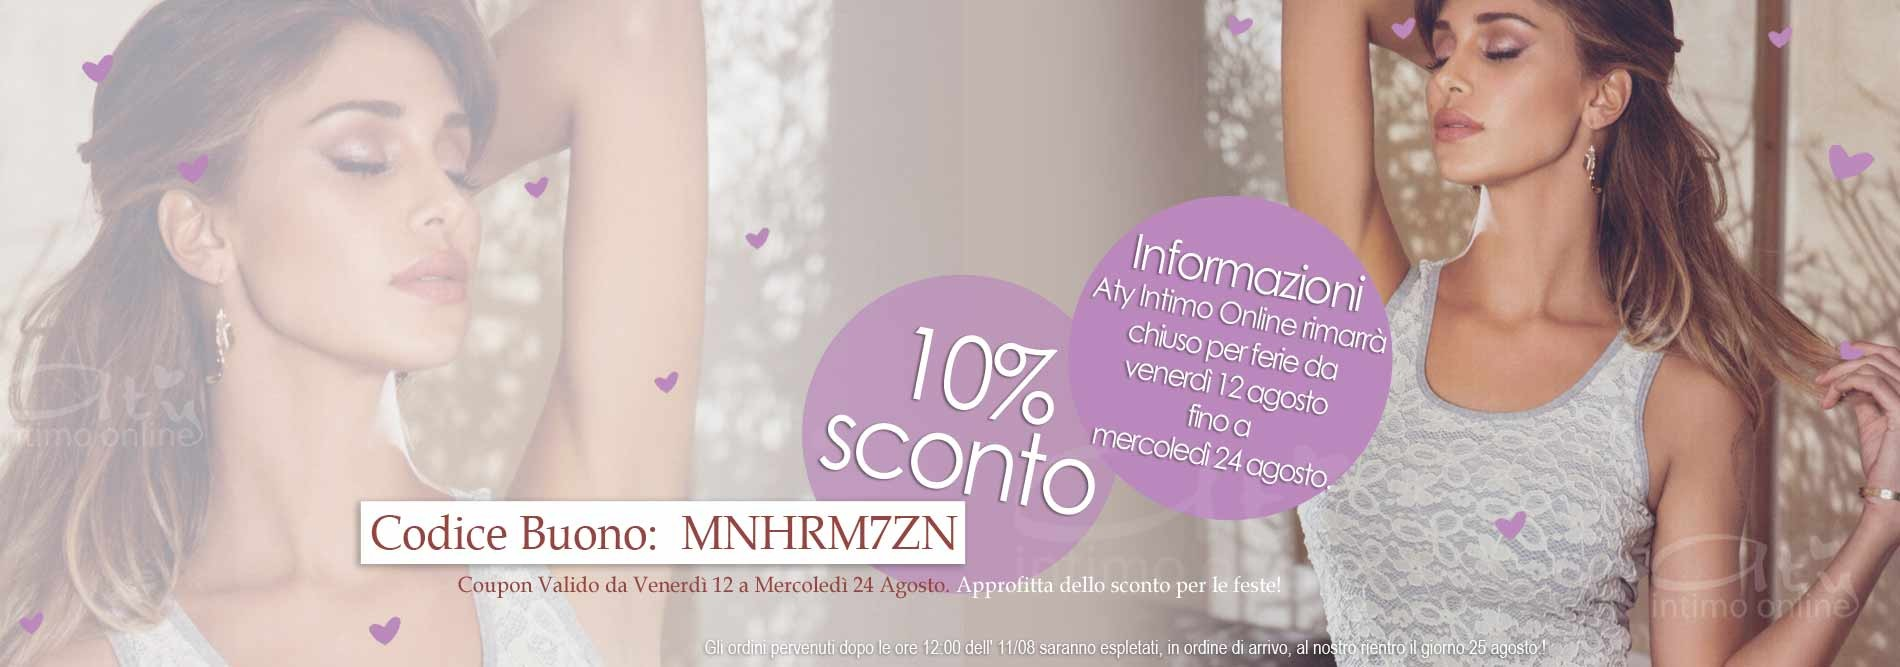 Intimo Online Vacanze